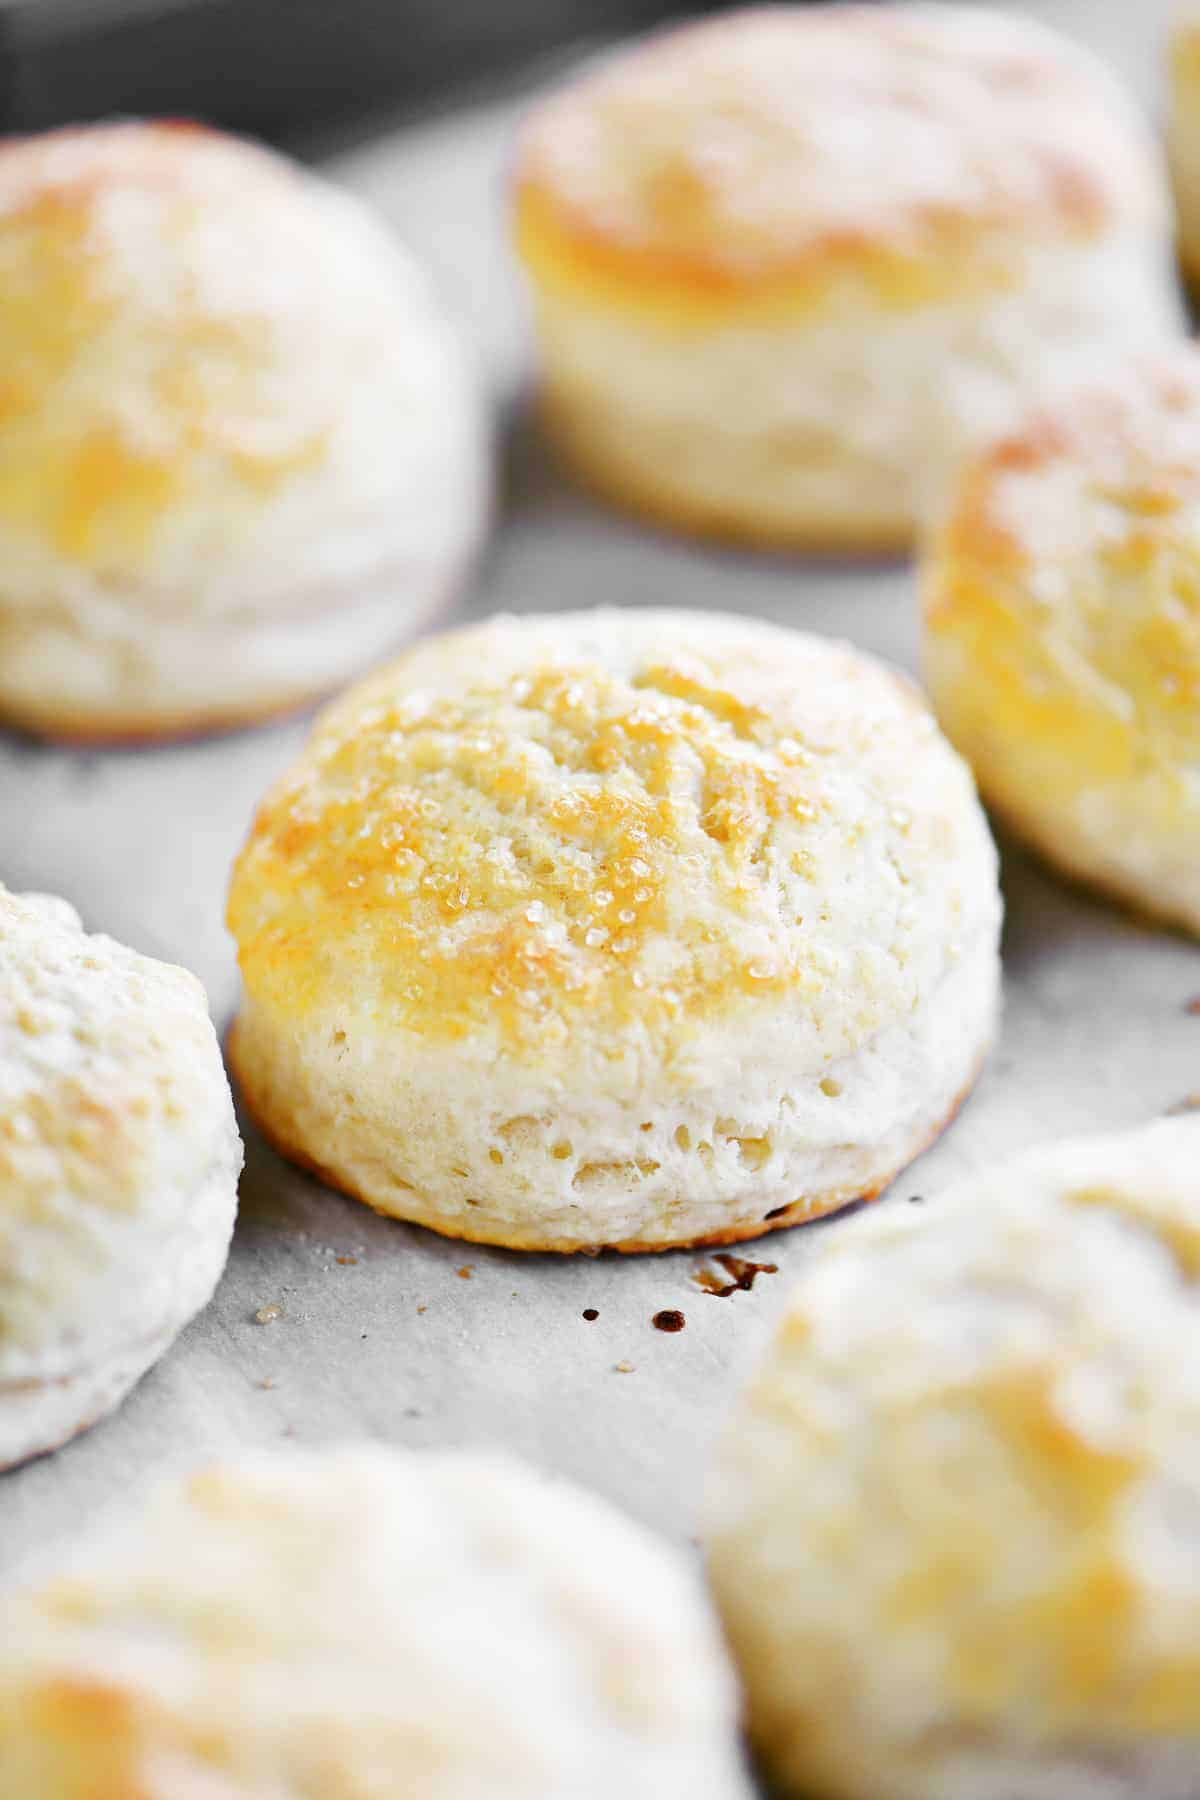 side view of baked shortcakes